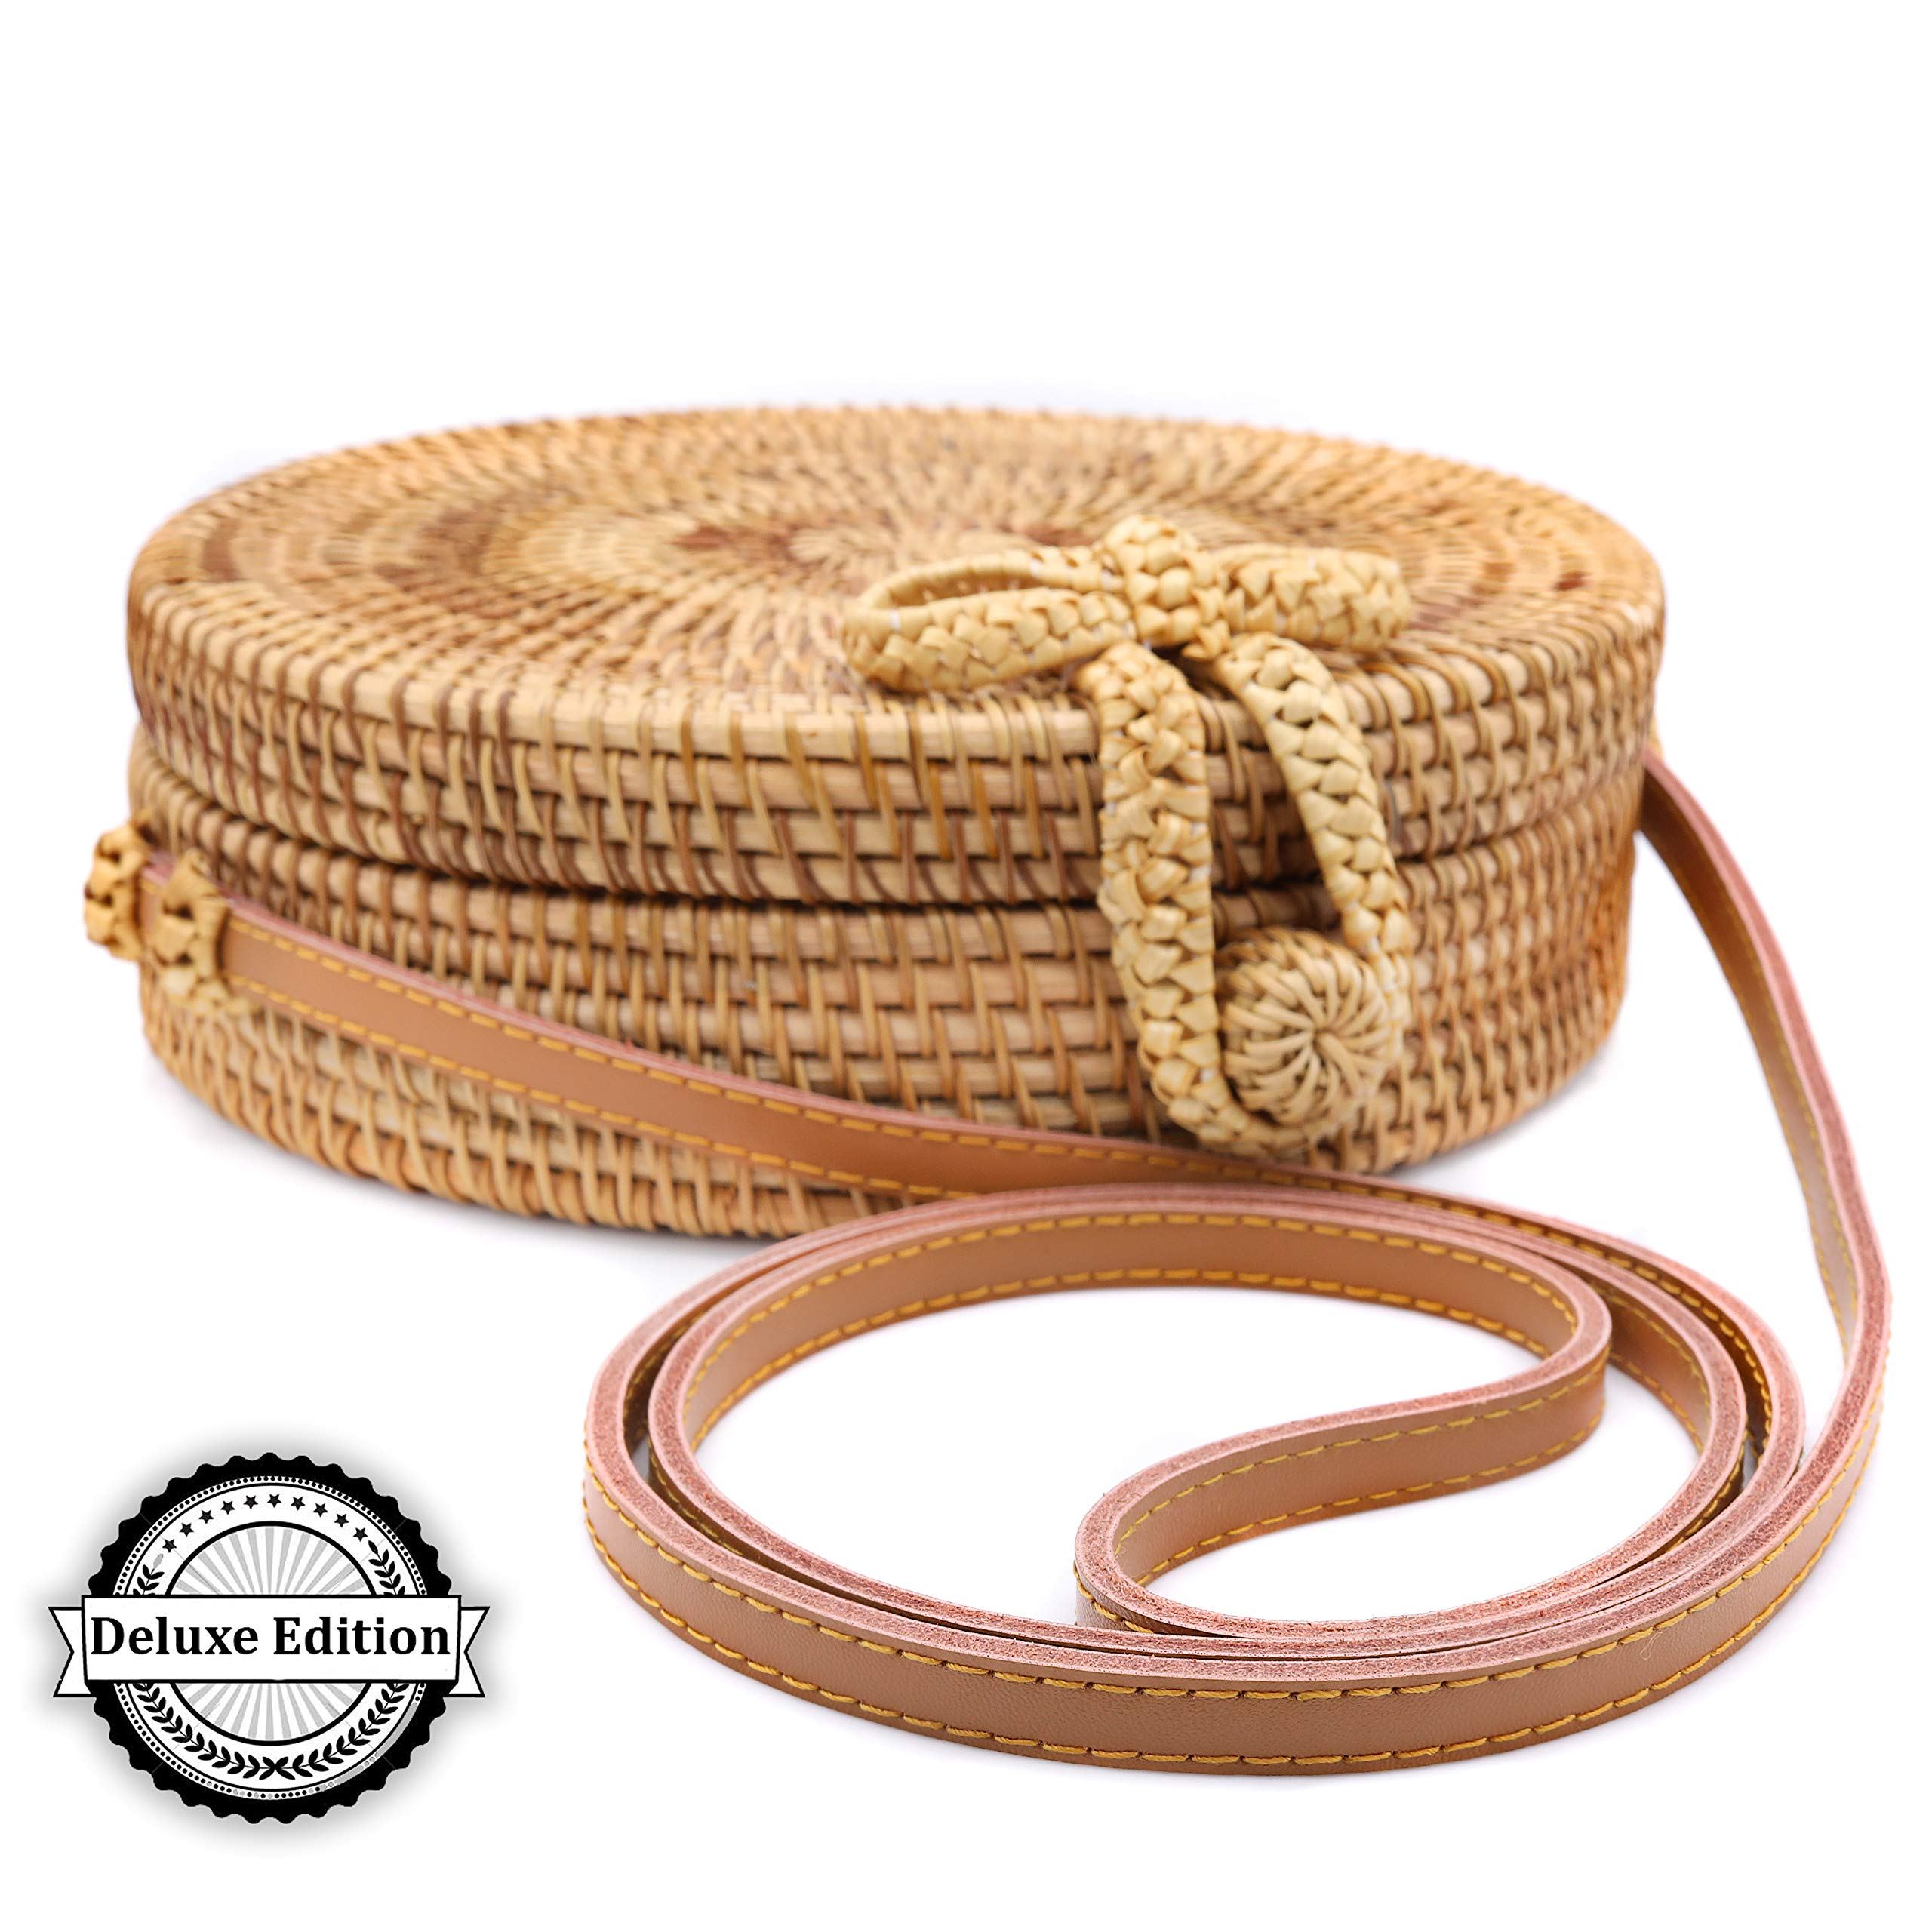 RATTAN NATURALS Handwoven Round Rattan Crossbody Bag| DELUXE EDITION | Round Straw Bag for Women | Genuine 100% Leather Shoulder straps | Straw purse For Women | Boho bag | Straw Handbag for Women by Rattan Naturals (Image #1)